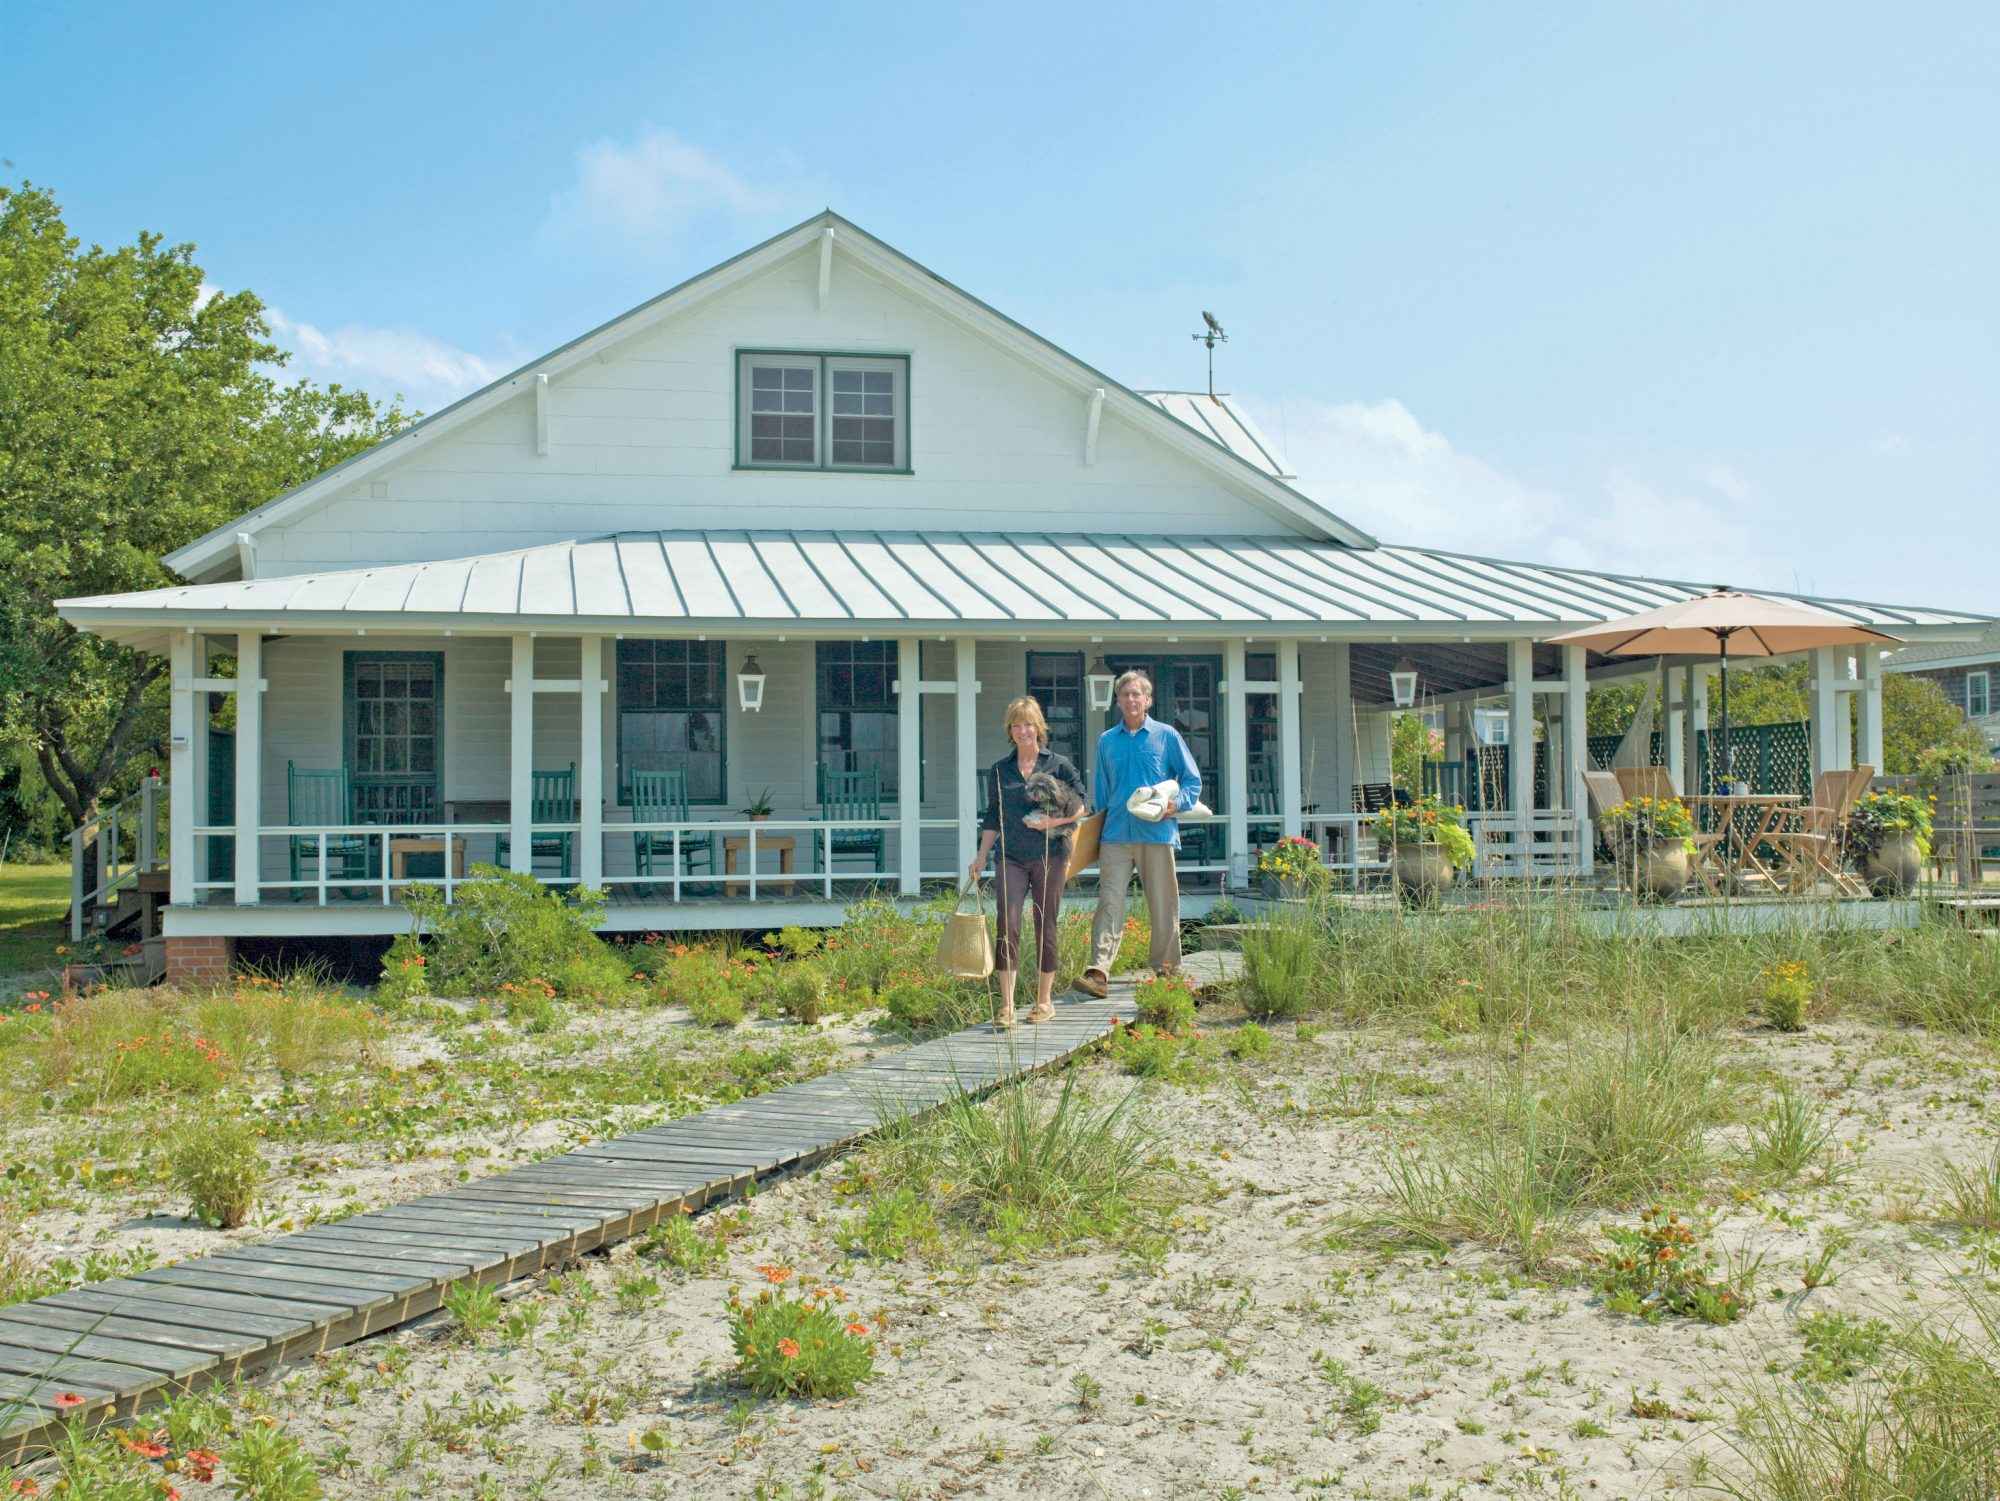 A North Carolina couple learned to live with—and play up—their cottage's quirky charms in Morehead City. While planning a renovation, Catherine and Mason Williams grew attached to the small 1914 cottage and decided not to make any additions but to optimize every inch of the 1,350 square feet. That's where the couple's four years of living on a 53-foot Ketch sailing yacht came in handy.